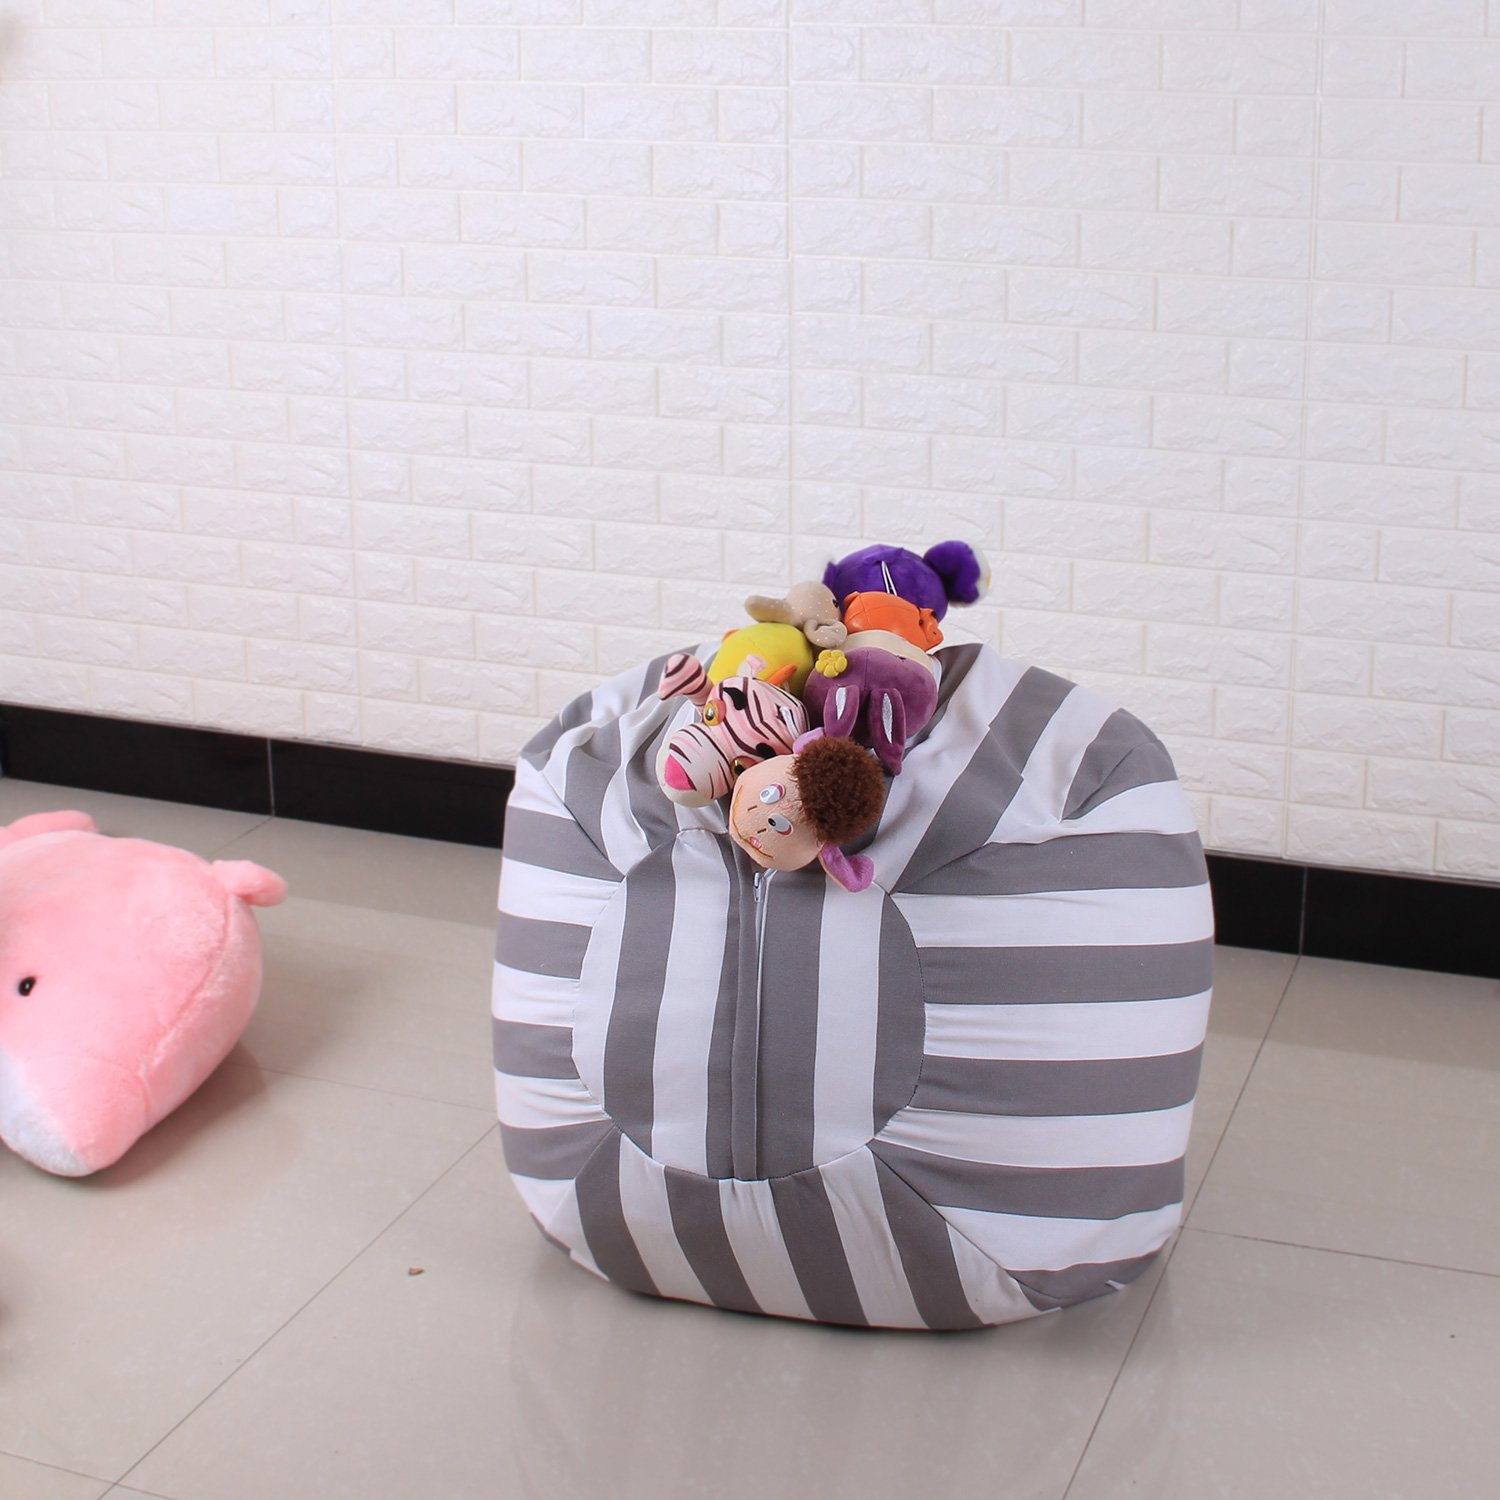 Stuffed Animal Storage Bean Bag - Toy Storage Children's Chair Cover Children Chair - Clean up the Room and Put Those Critters to Work for You! (26'') by Yonfro (Image #7)